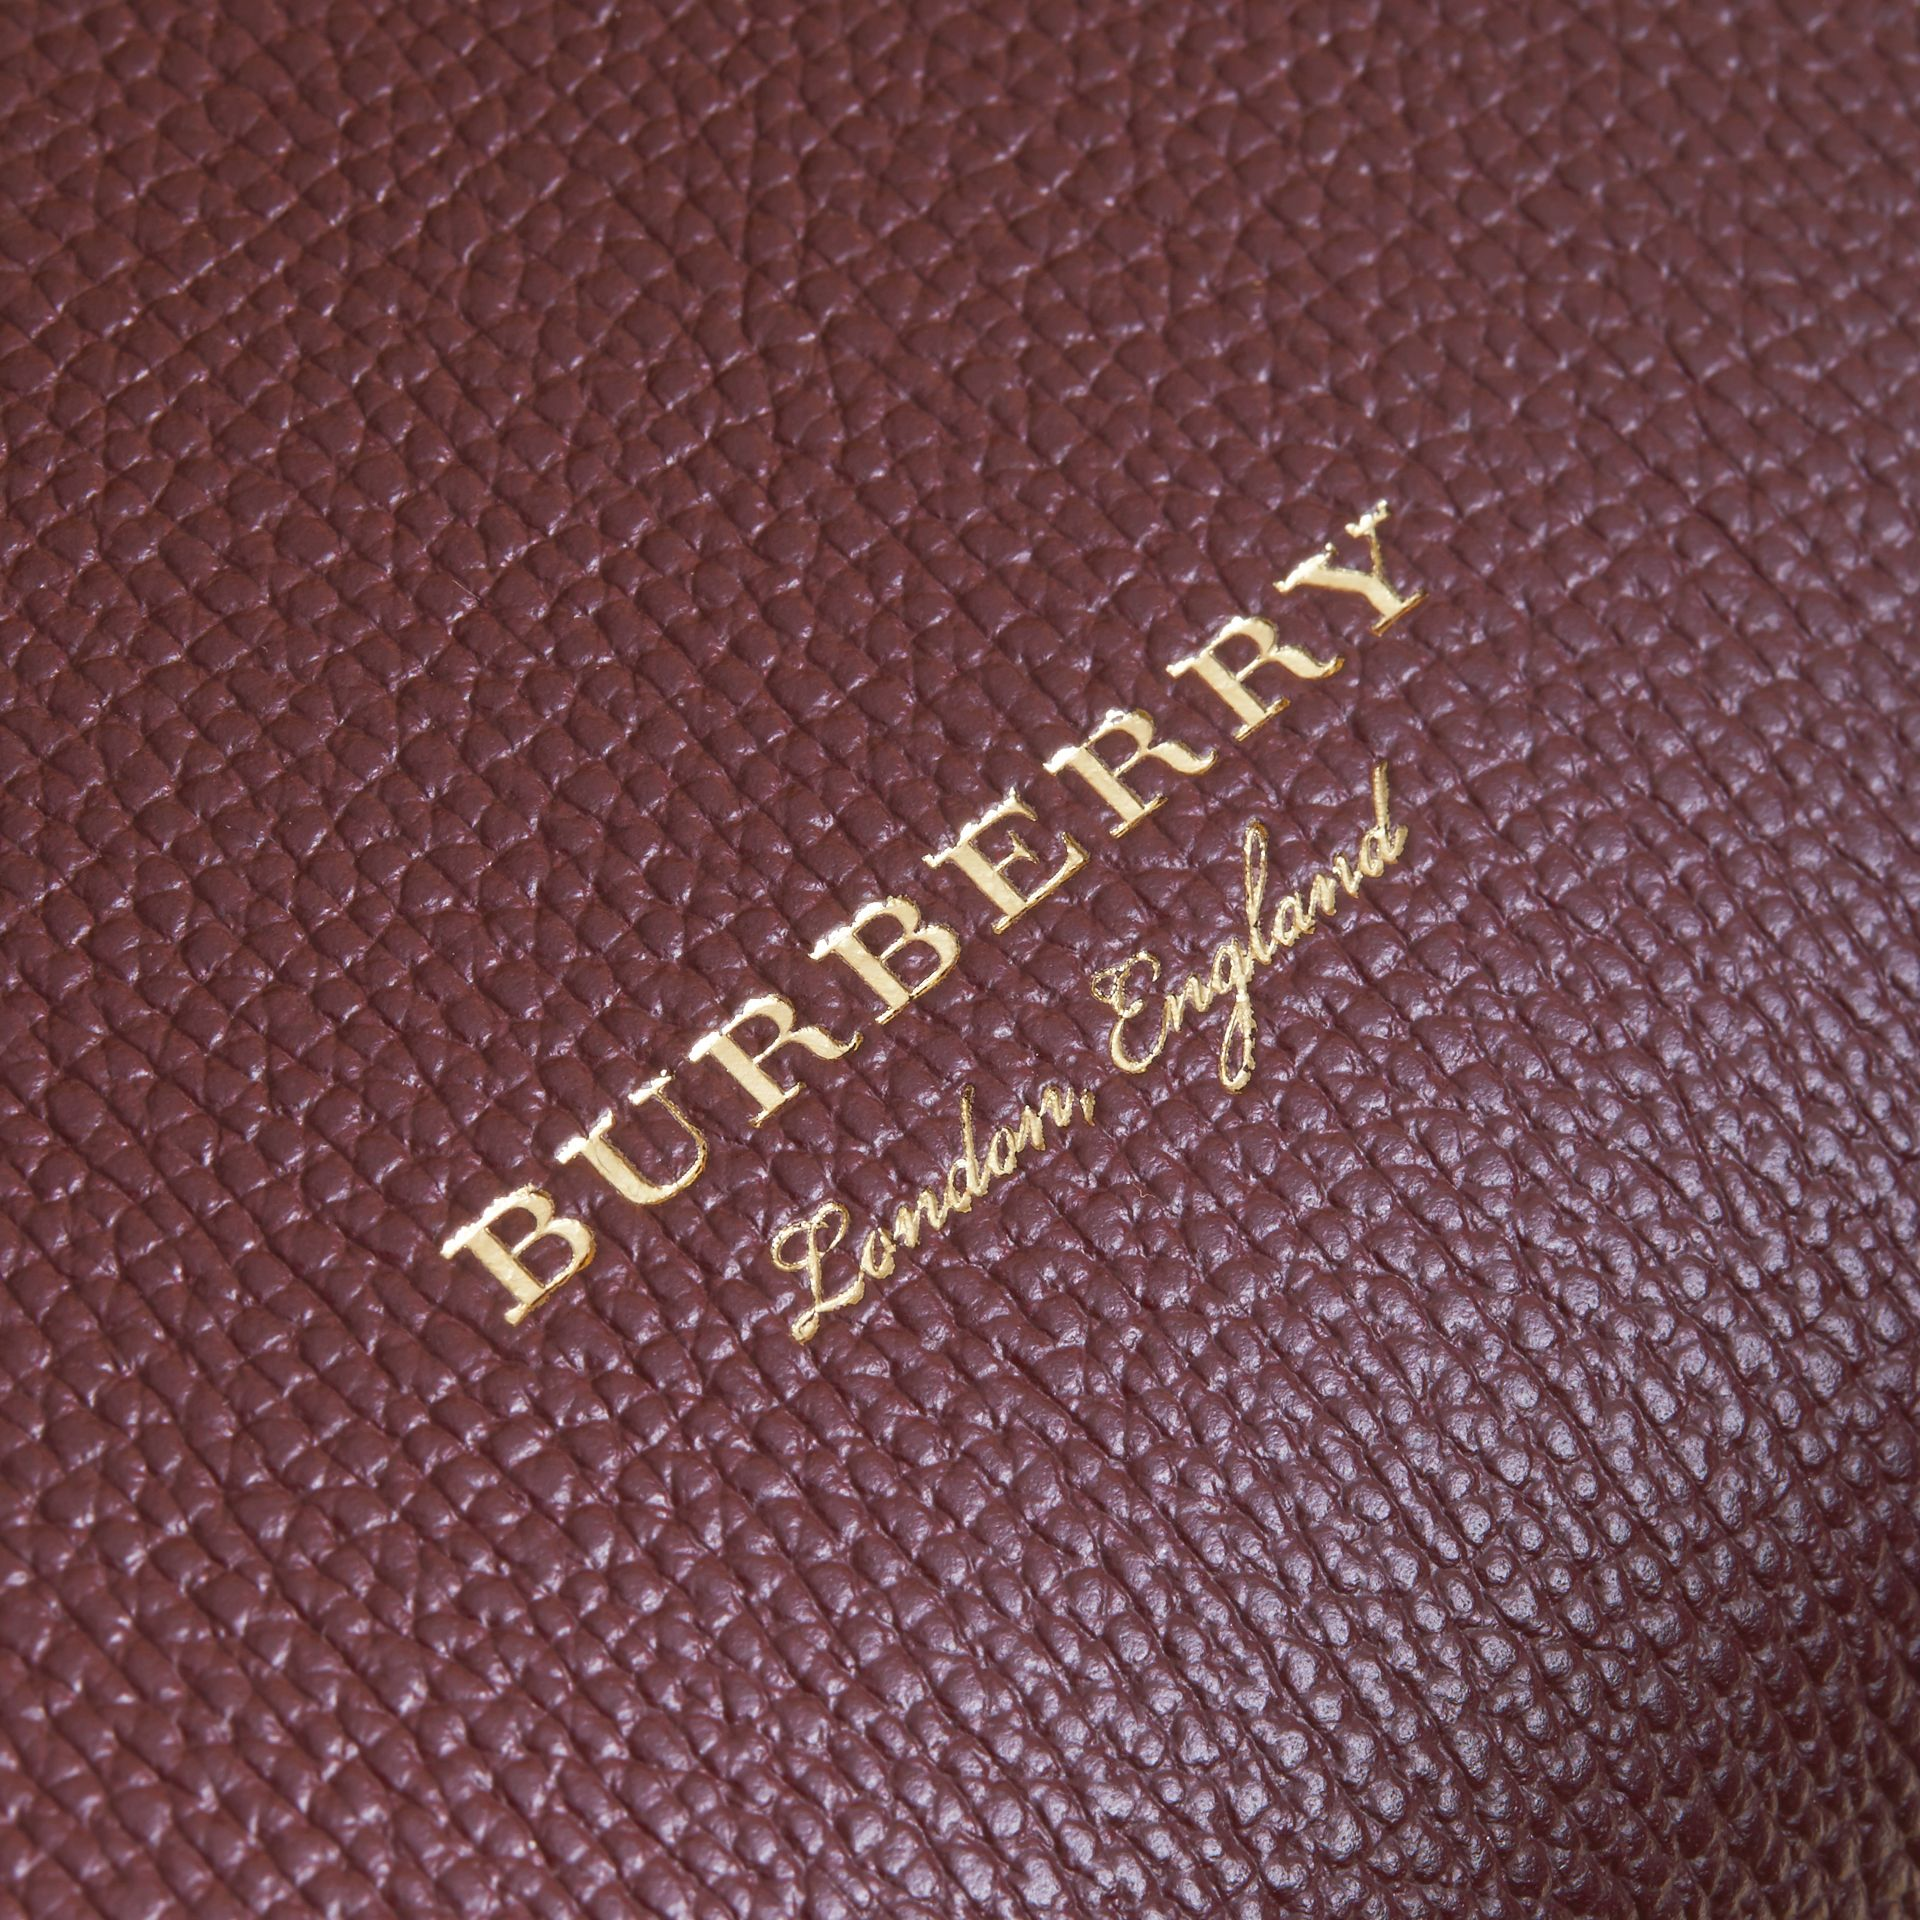 Medium Grainy Leather and House Check Tote Bag in Mahogany Red - Women | Burberry Singapore - gallery image 1